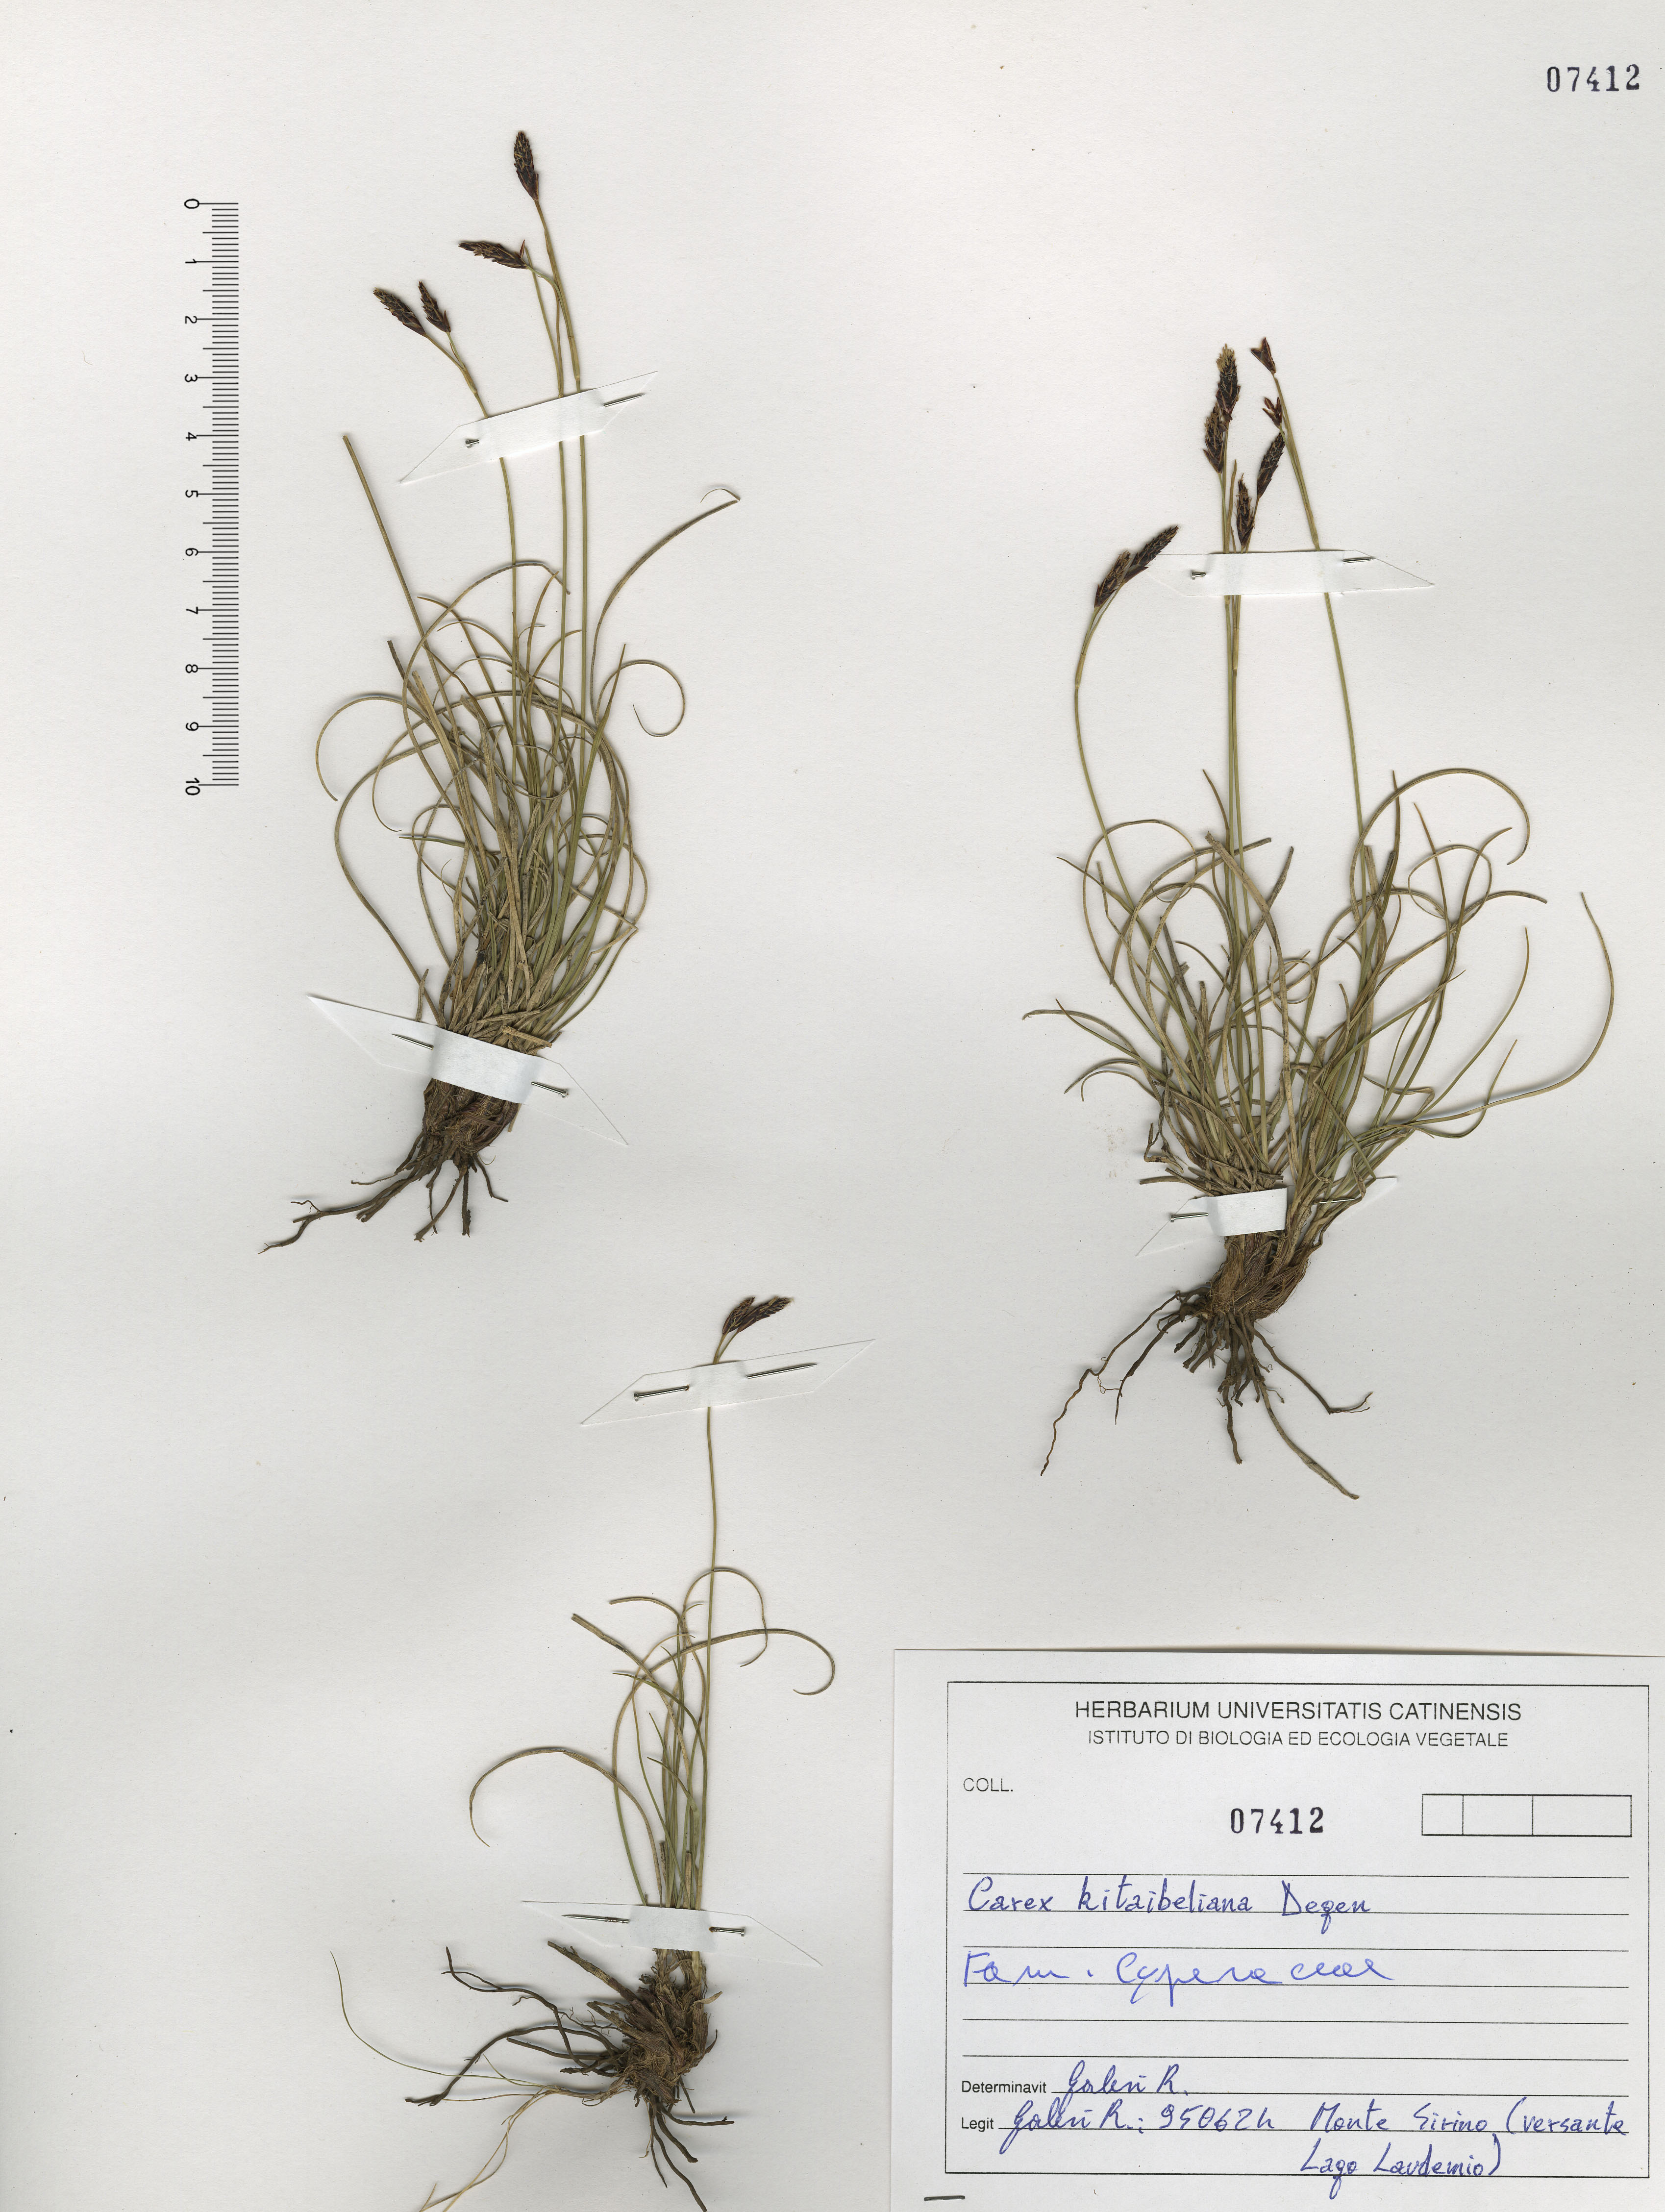 © Hortus Botanicus Catinensis - Herb. sheet 107412<br>by Andrea Moro<br><br>Distributed under CC-BY-SA 4.0 license.